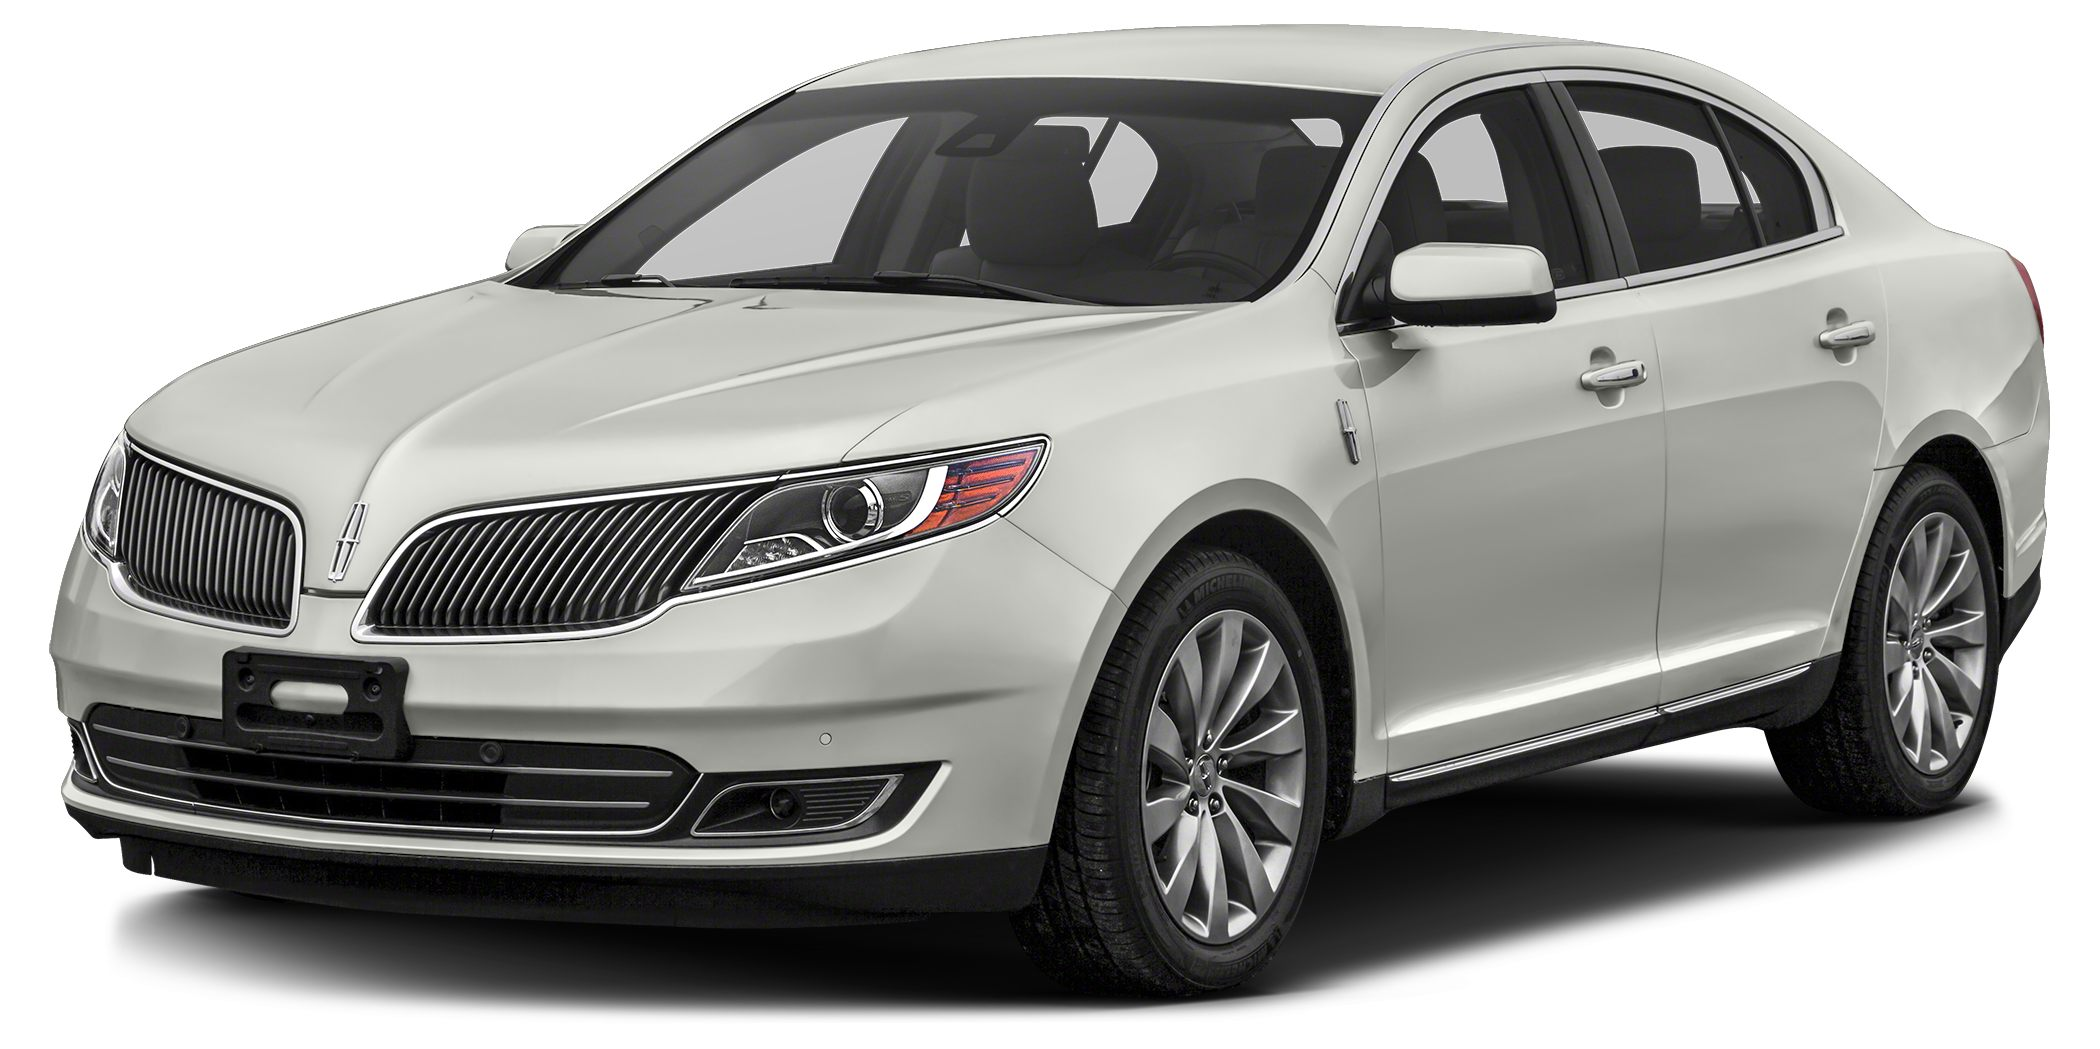 2015 Lincoln MKS Base Youll love getting behind the wheel of this 2015 Lincoln MKS 4DR SDN 37L A